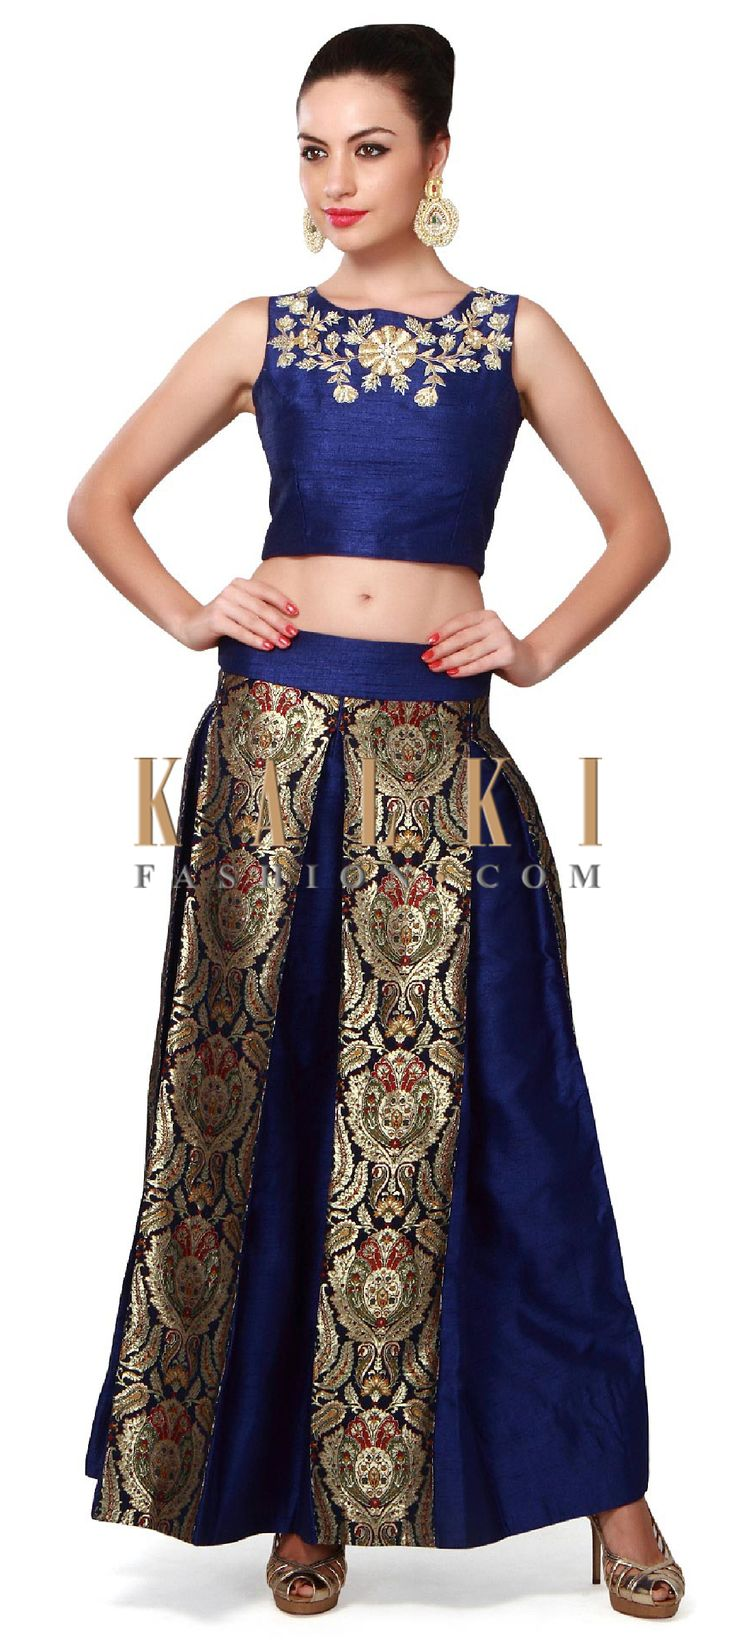 Buy Online from the link below. We ship worldwide (Free Shipping over US$100). Product SKU - 315703. Product Price - $369.00. Product link - http://www.kalkifashion.com/navy-blue-crop-top-and-skirt-featuring-in-zardosi-embroidery-only-on-kalki.html